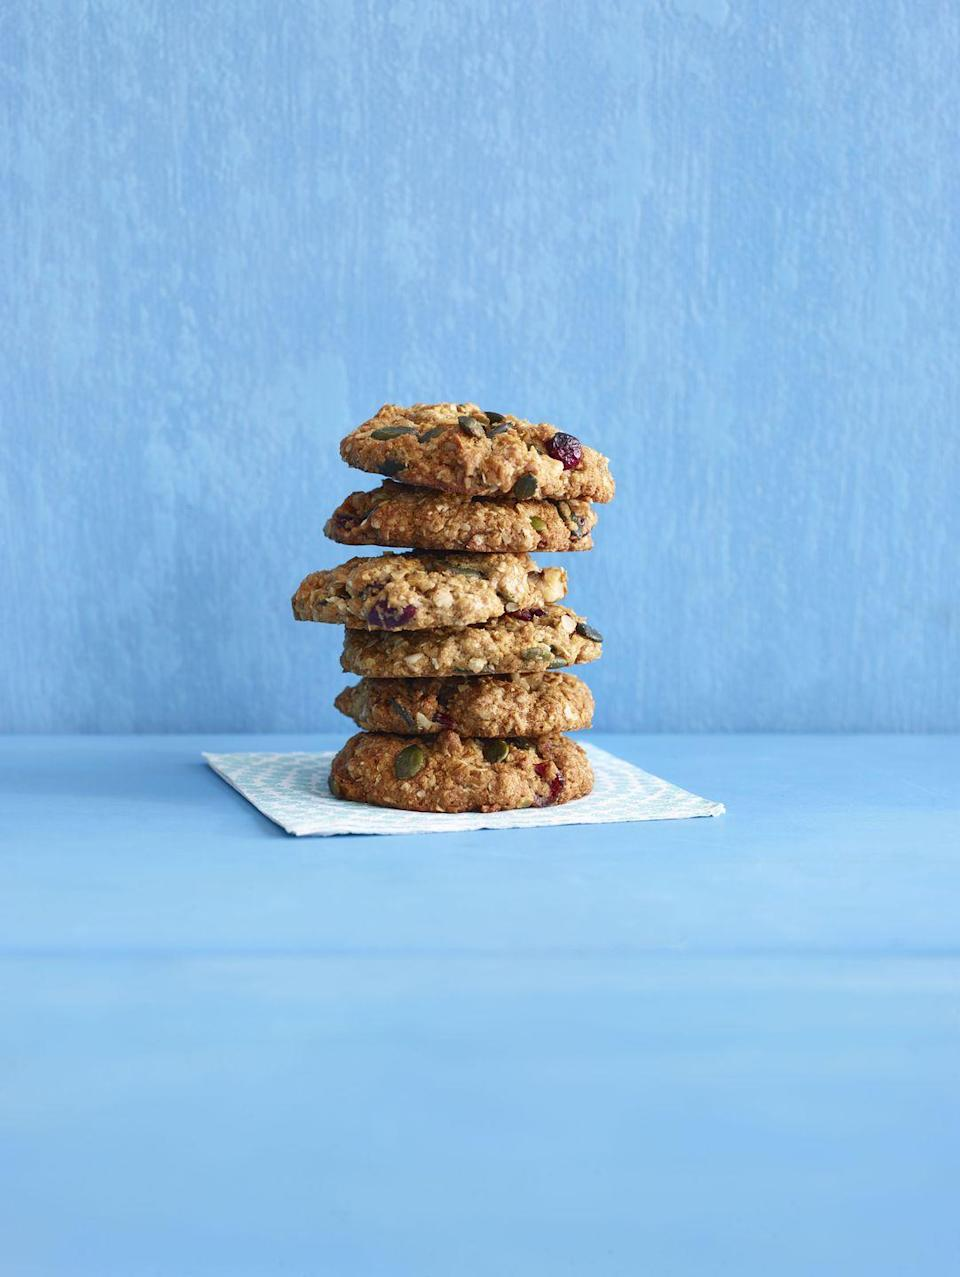 """<p>With whole-wheat flour, nuts, grains, and dried fruit, these not-too-sweet cookies make a great breakfast treat or on-the-go snack.</p><p><em><a href=""""https://www.goodhousekeeping.com/food-recipes/a15753/hearty-oat-cookies-recipe-wdy0914/"""" rel=""""nofollow noopener"""" target=""""_blank"""" data-ylk=""""slk:Get the recipe for Hearty Oat Cookies »"""" class=""""link rapid-noclick-resp"""">Get the recipe for Hearty Oat Cookies »</a></em></p><p><strong>RELATED:</strong> <a href=""""https://www.goodhousekeeping.com/food-recipes/easy/g871/quick-breakfasts/"""" rel=""""nofollow noopener"""" target=""""_blank"""" data-ylk=""""slk:55 Quick and Easy Healthy Breakfasts for Your Busiest Mornings"""" class=""""link rapid-noclick-resp"""">55 Quick and Easy Healthy Breakfasts for Your Busiest Mornings</a></p>"""